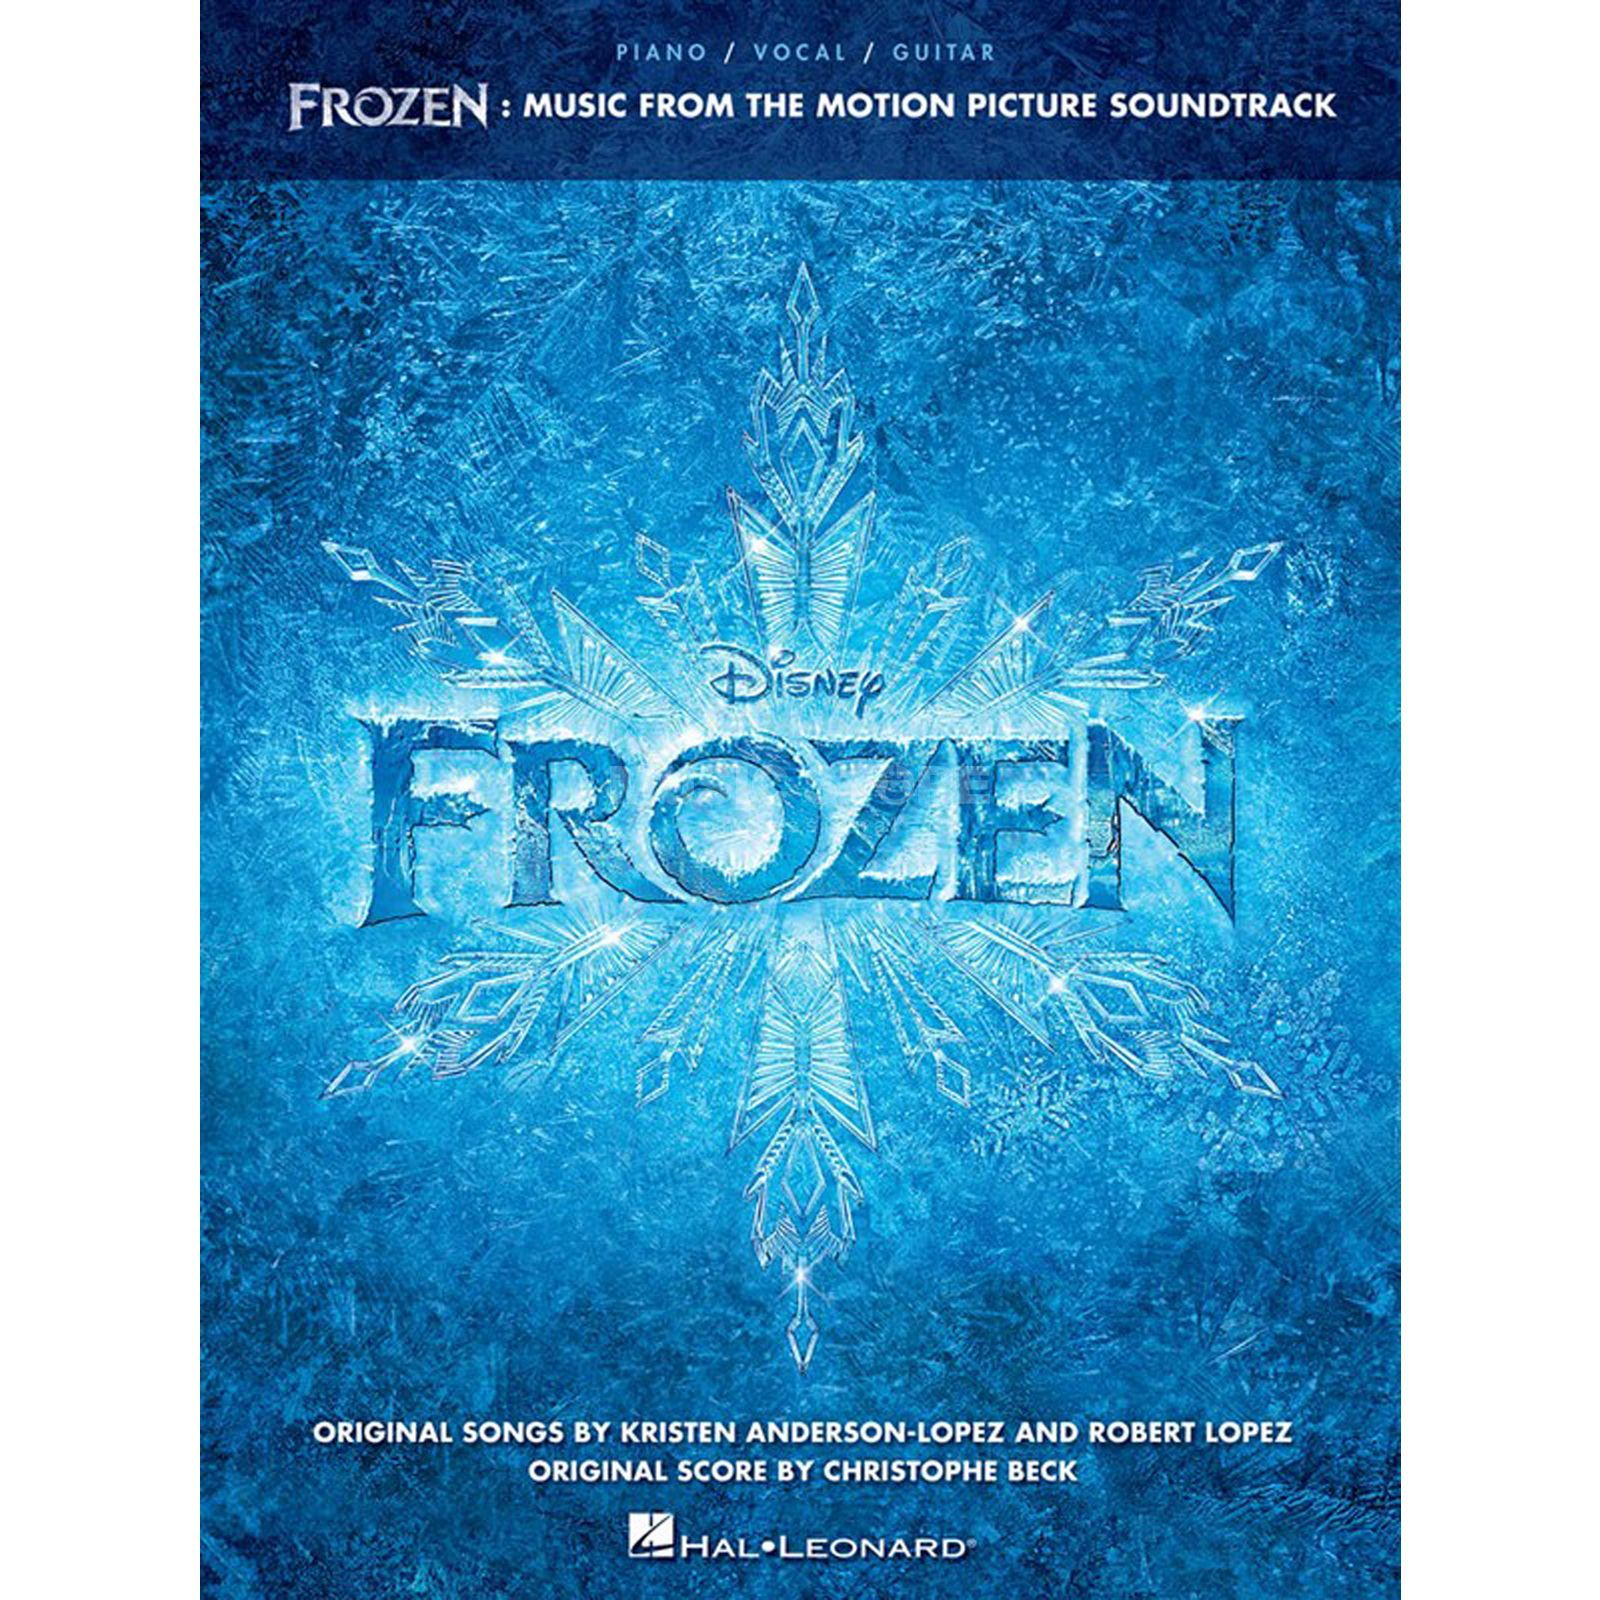 Hal Leonard Frozen: Music From The Motion Picture Soundtrack PVG Produktbild